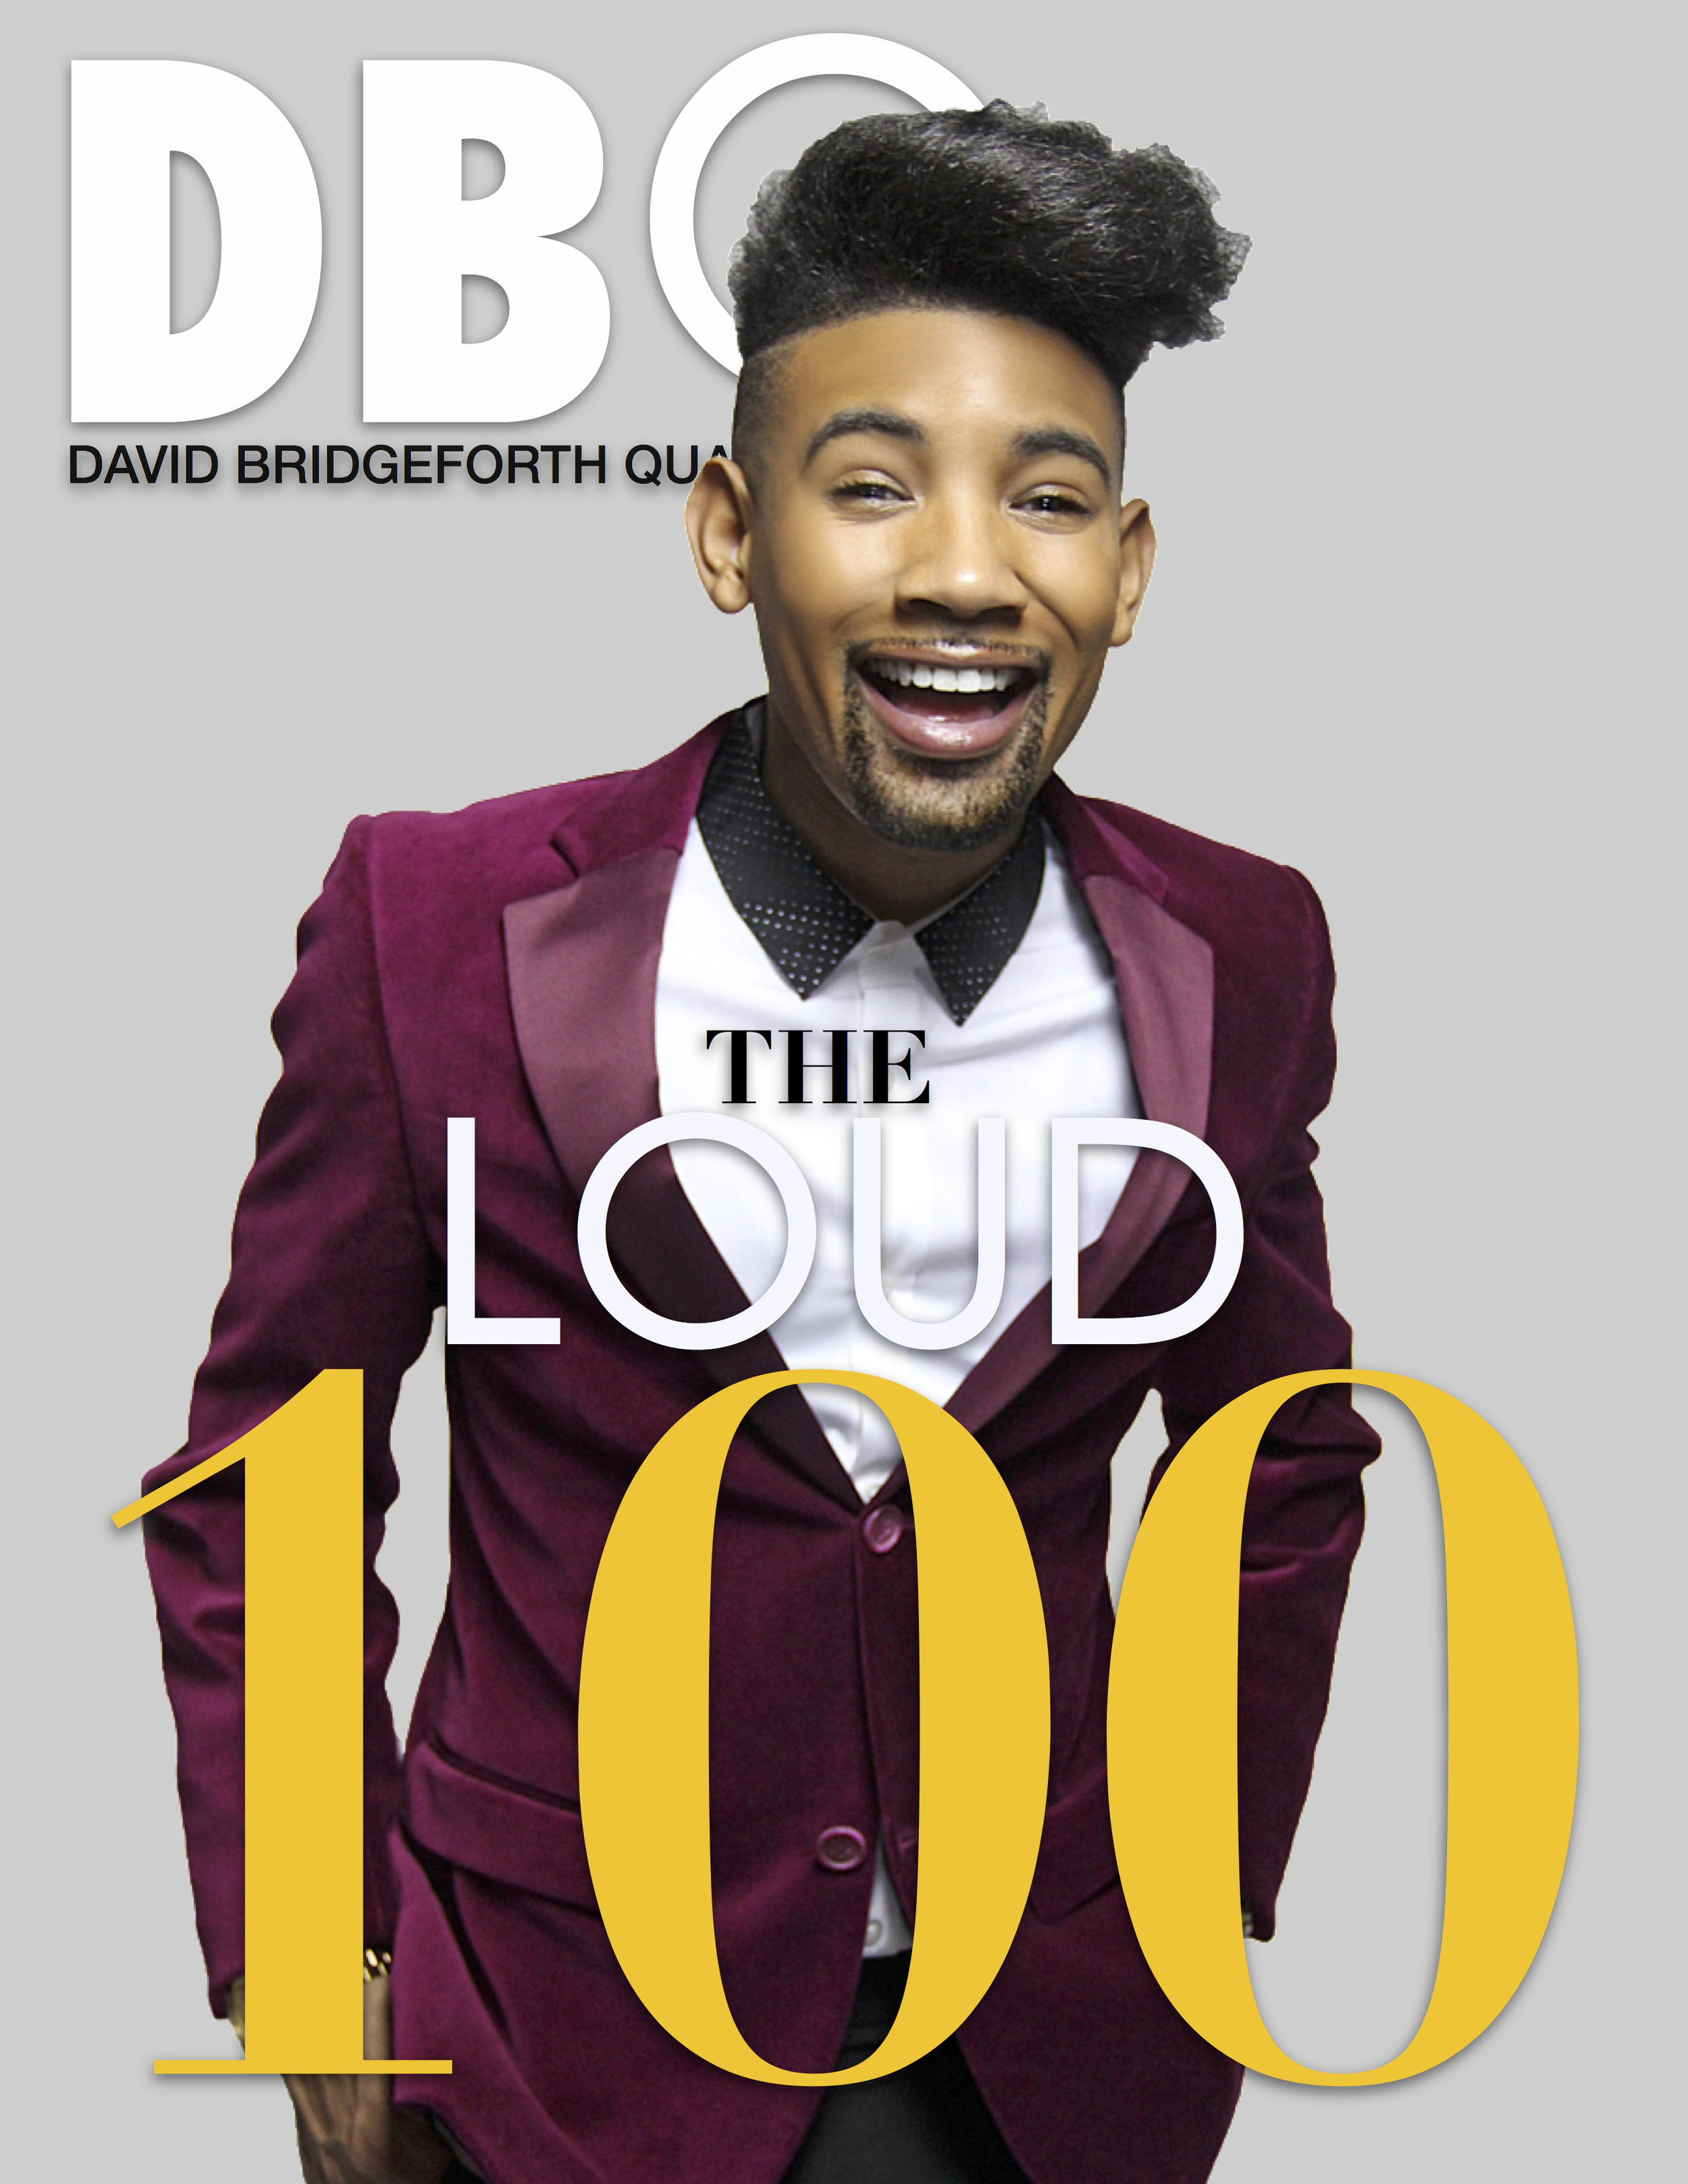 DBQ Magazine LOUD 100 COVER.jpg